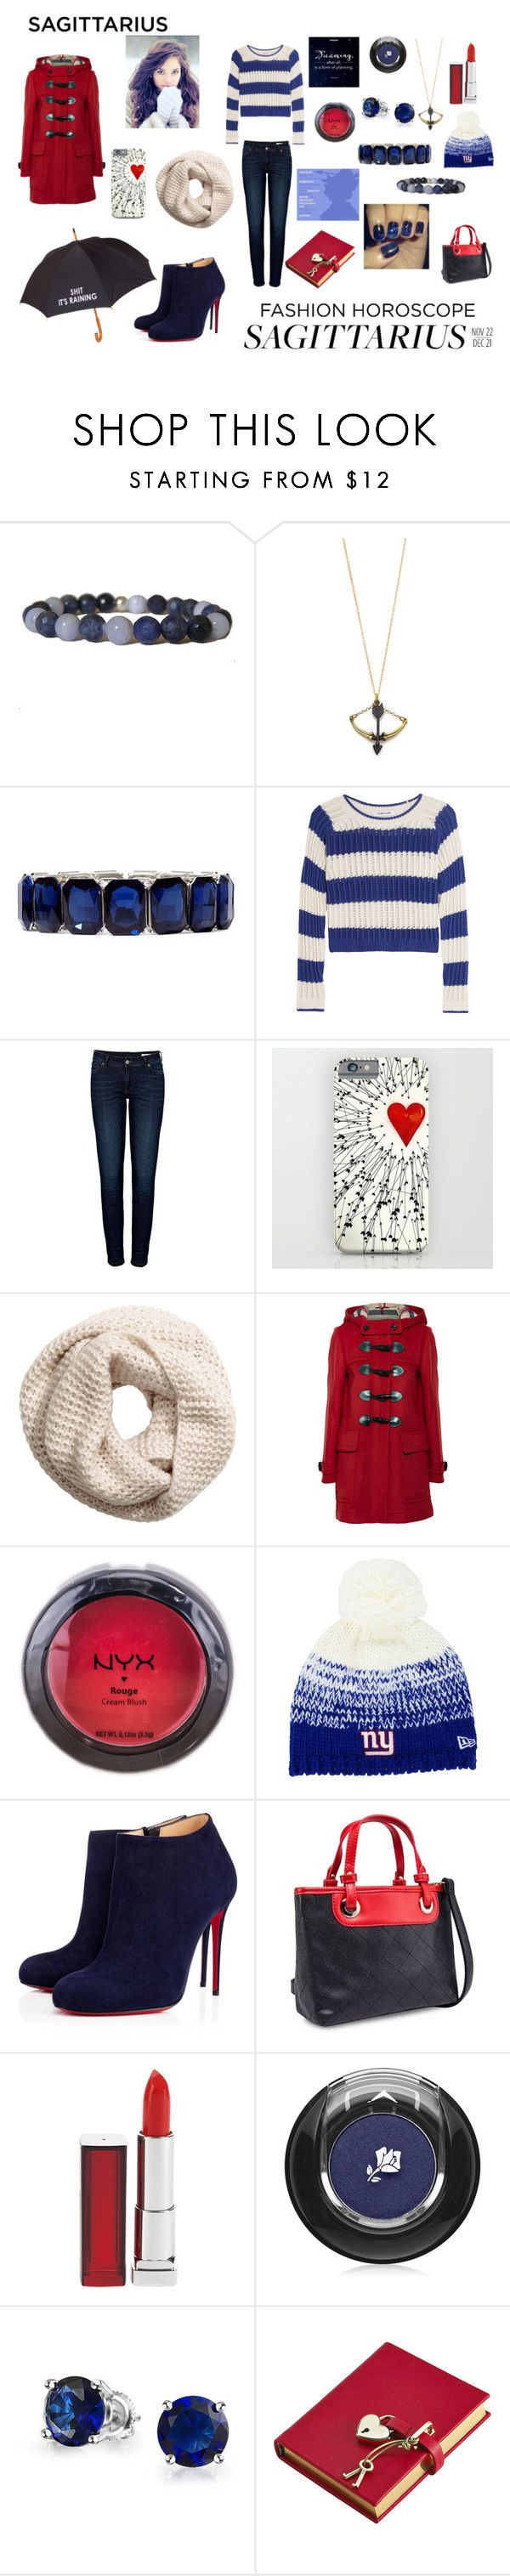 """""""Untitled #262"""" by nadiamay ❤ liked on Polyvore featuring Monserat De Lucca, Monet, Elizabeth and James, Anine Bing, H&M, Novelty, Burberry, NYX, New Era and Christian Louboutin"""